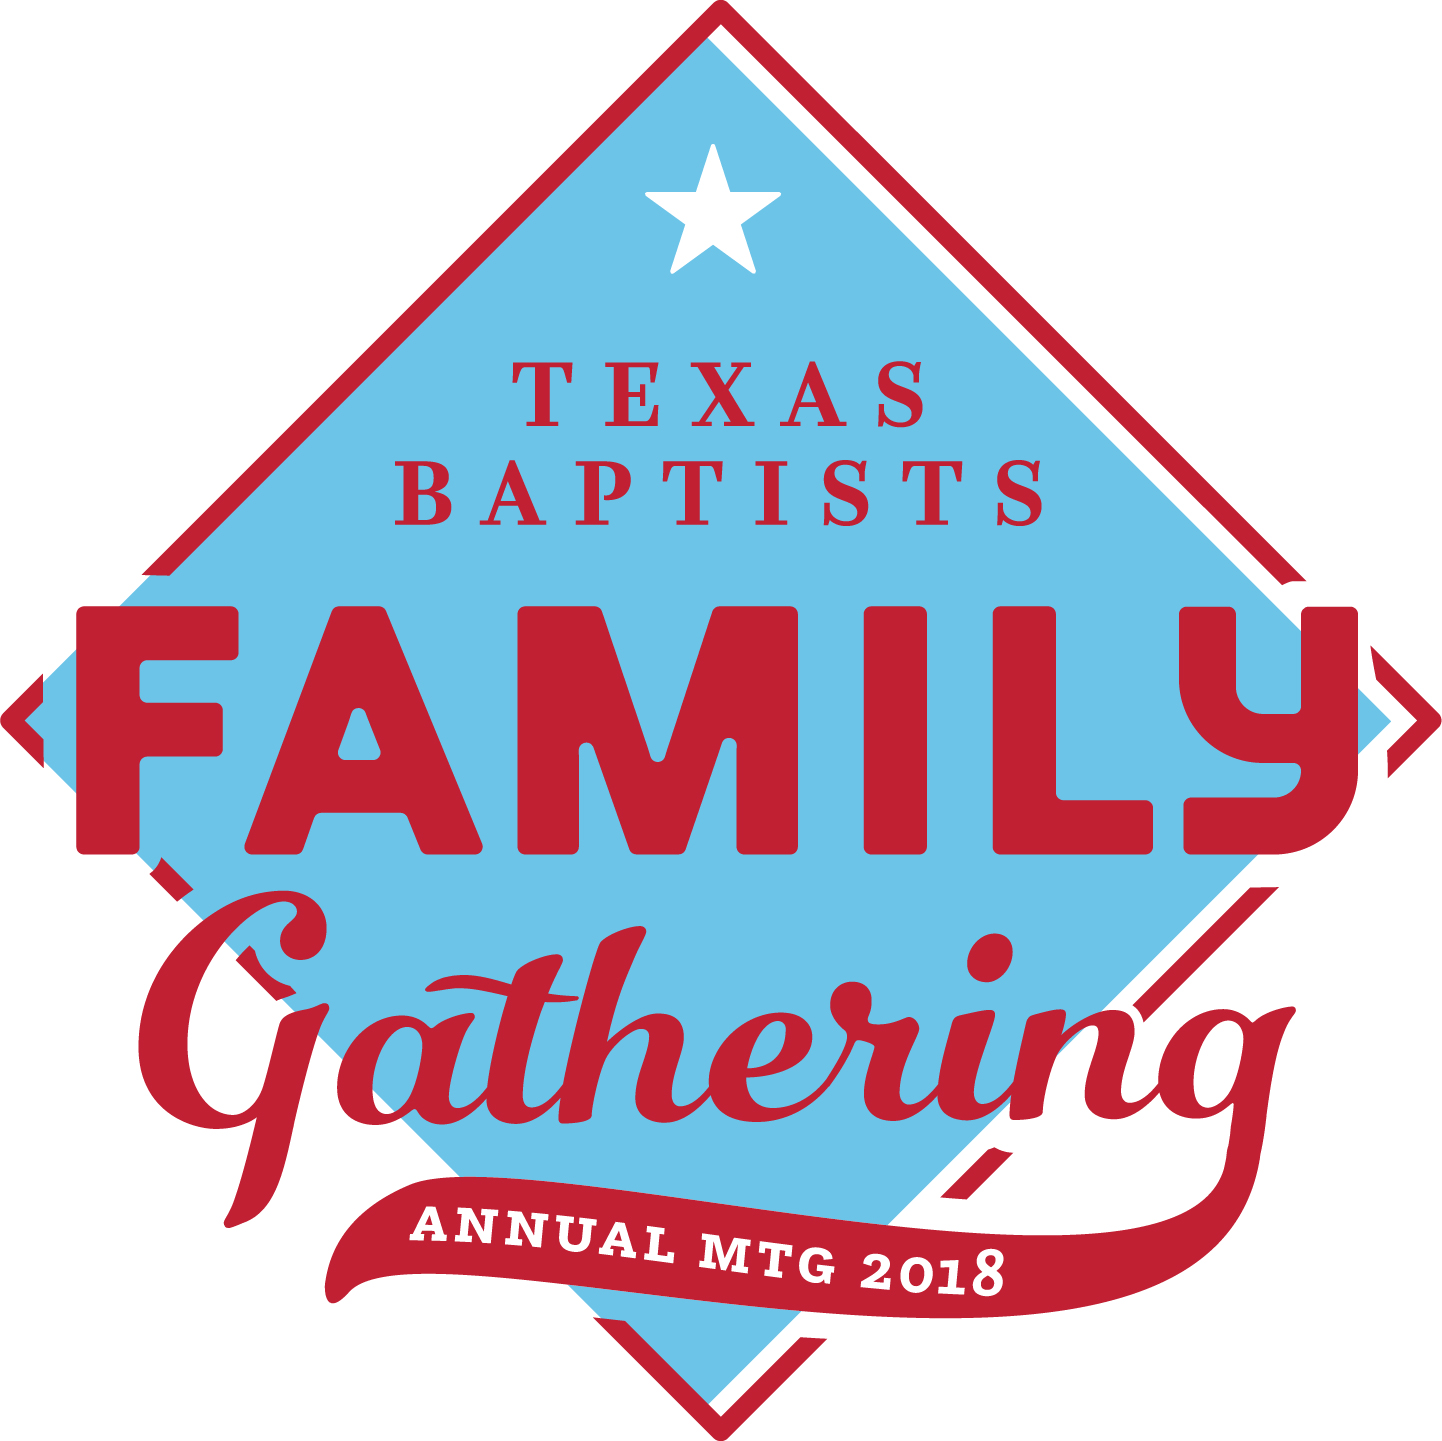 Texas Baptists - Promotional | Family Gathering